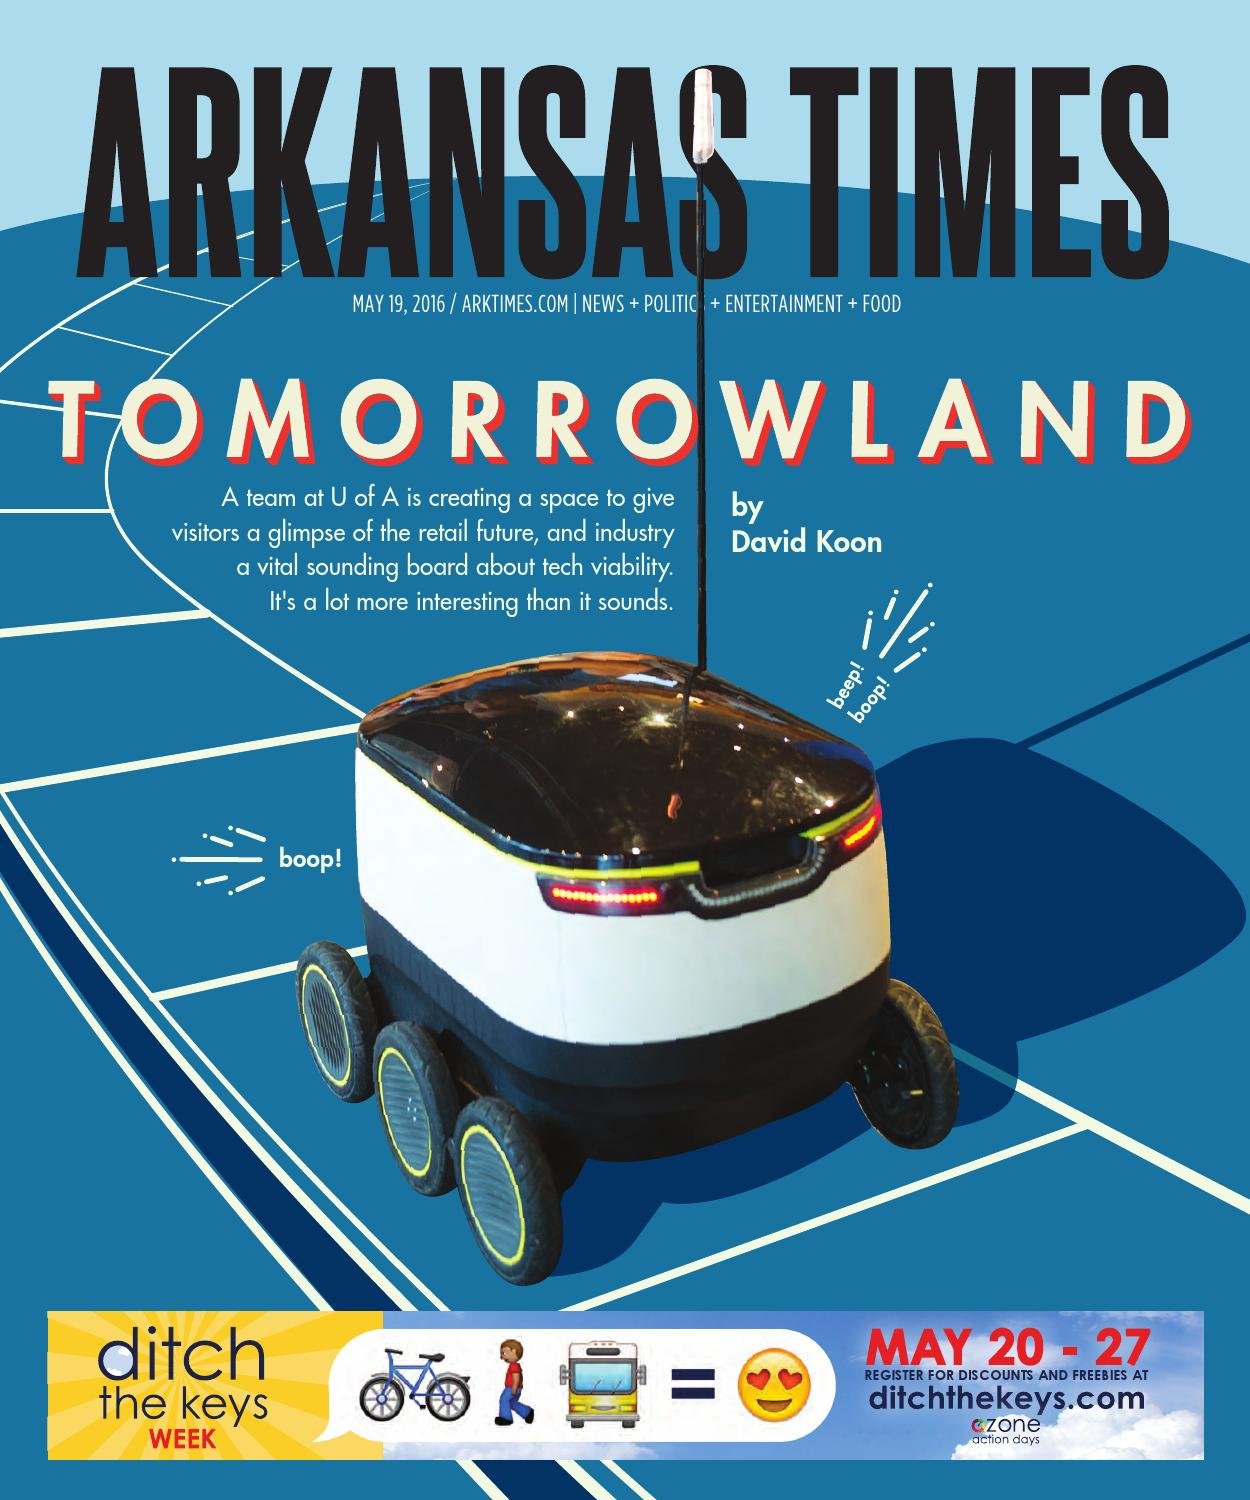 Arkansas Times - May 19, 2016 by Arkansas Times - issuu